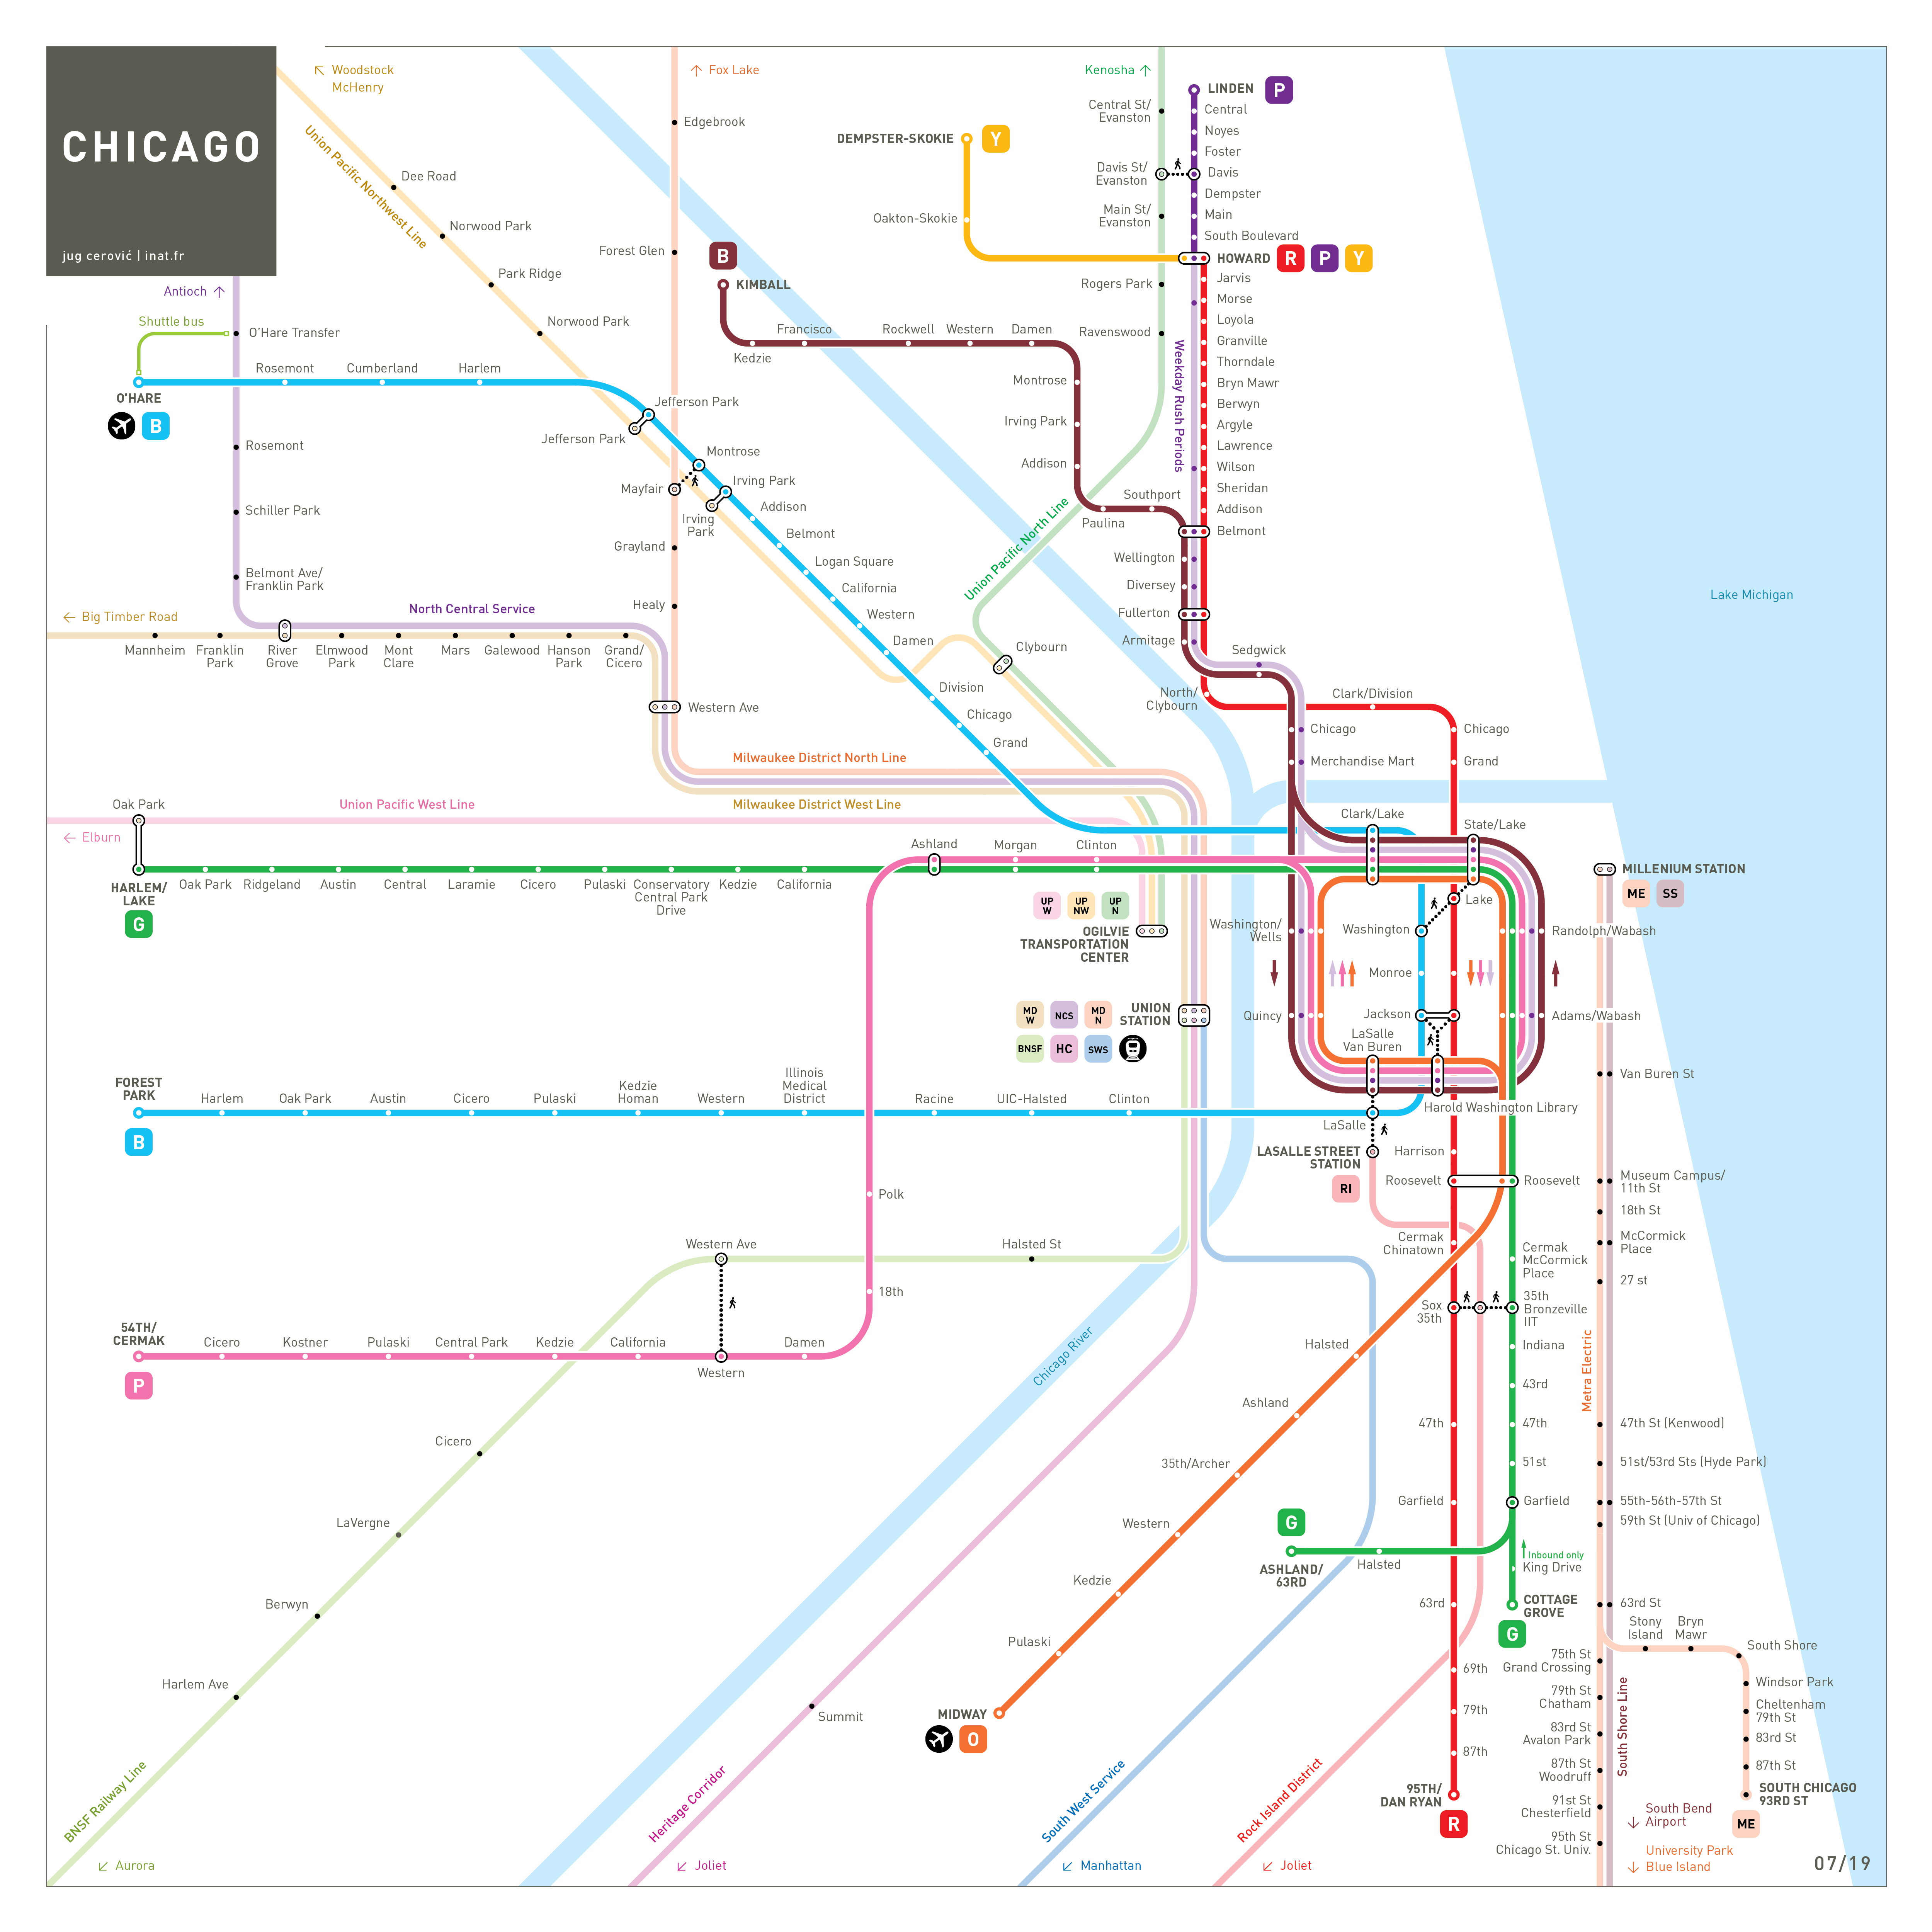 Chicago Subway Map : inat